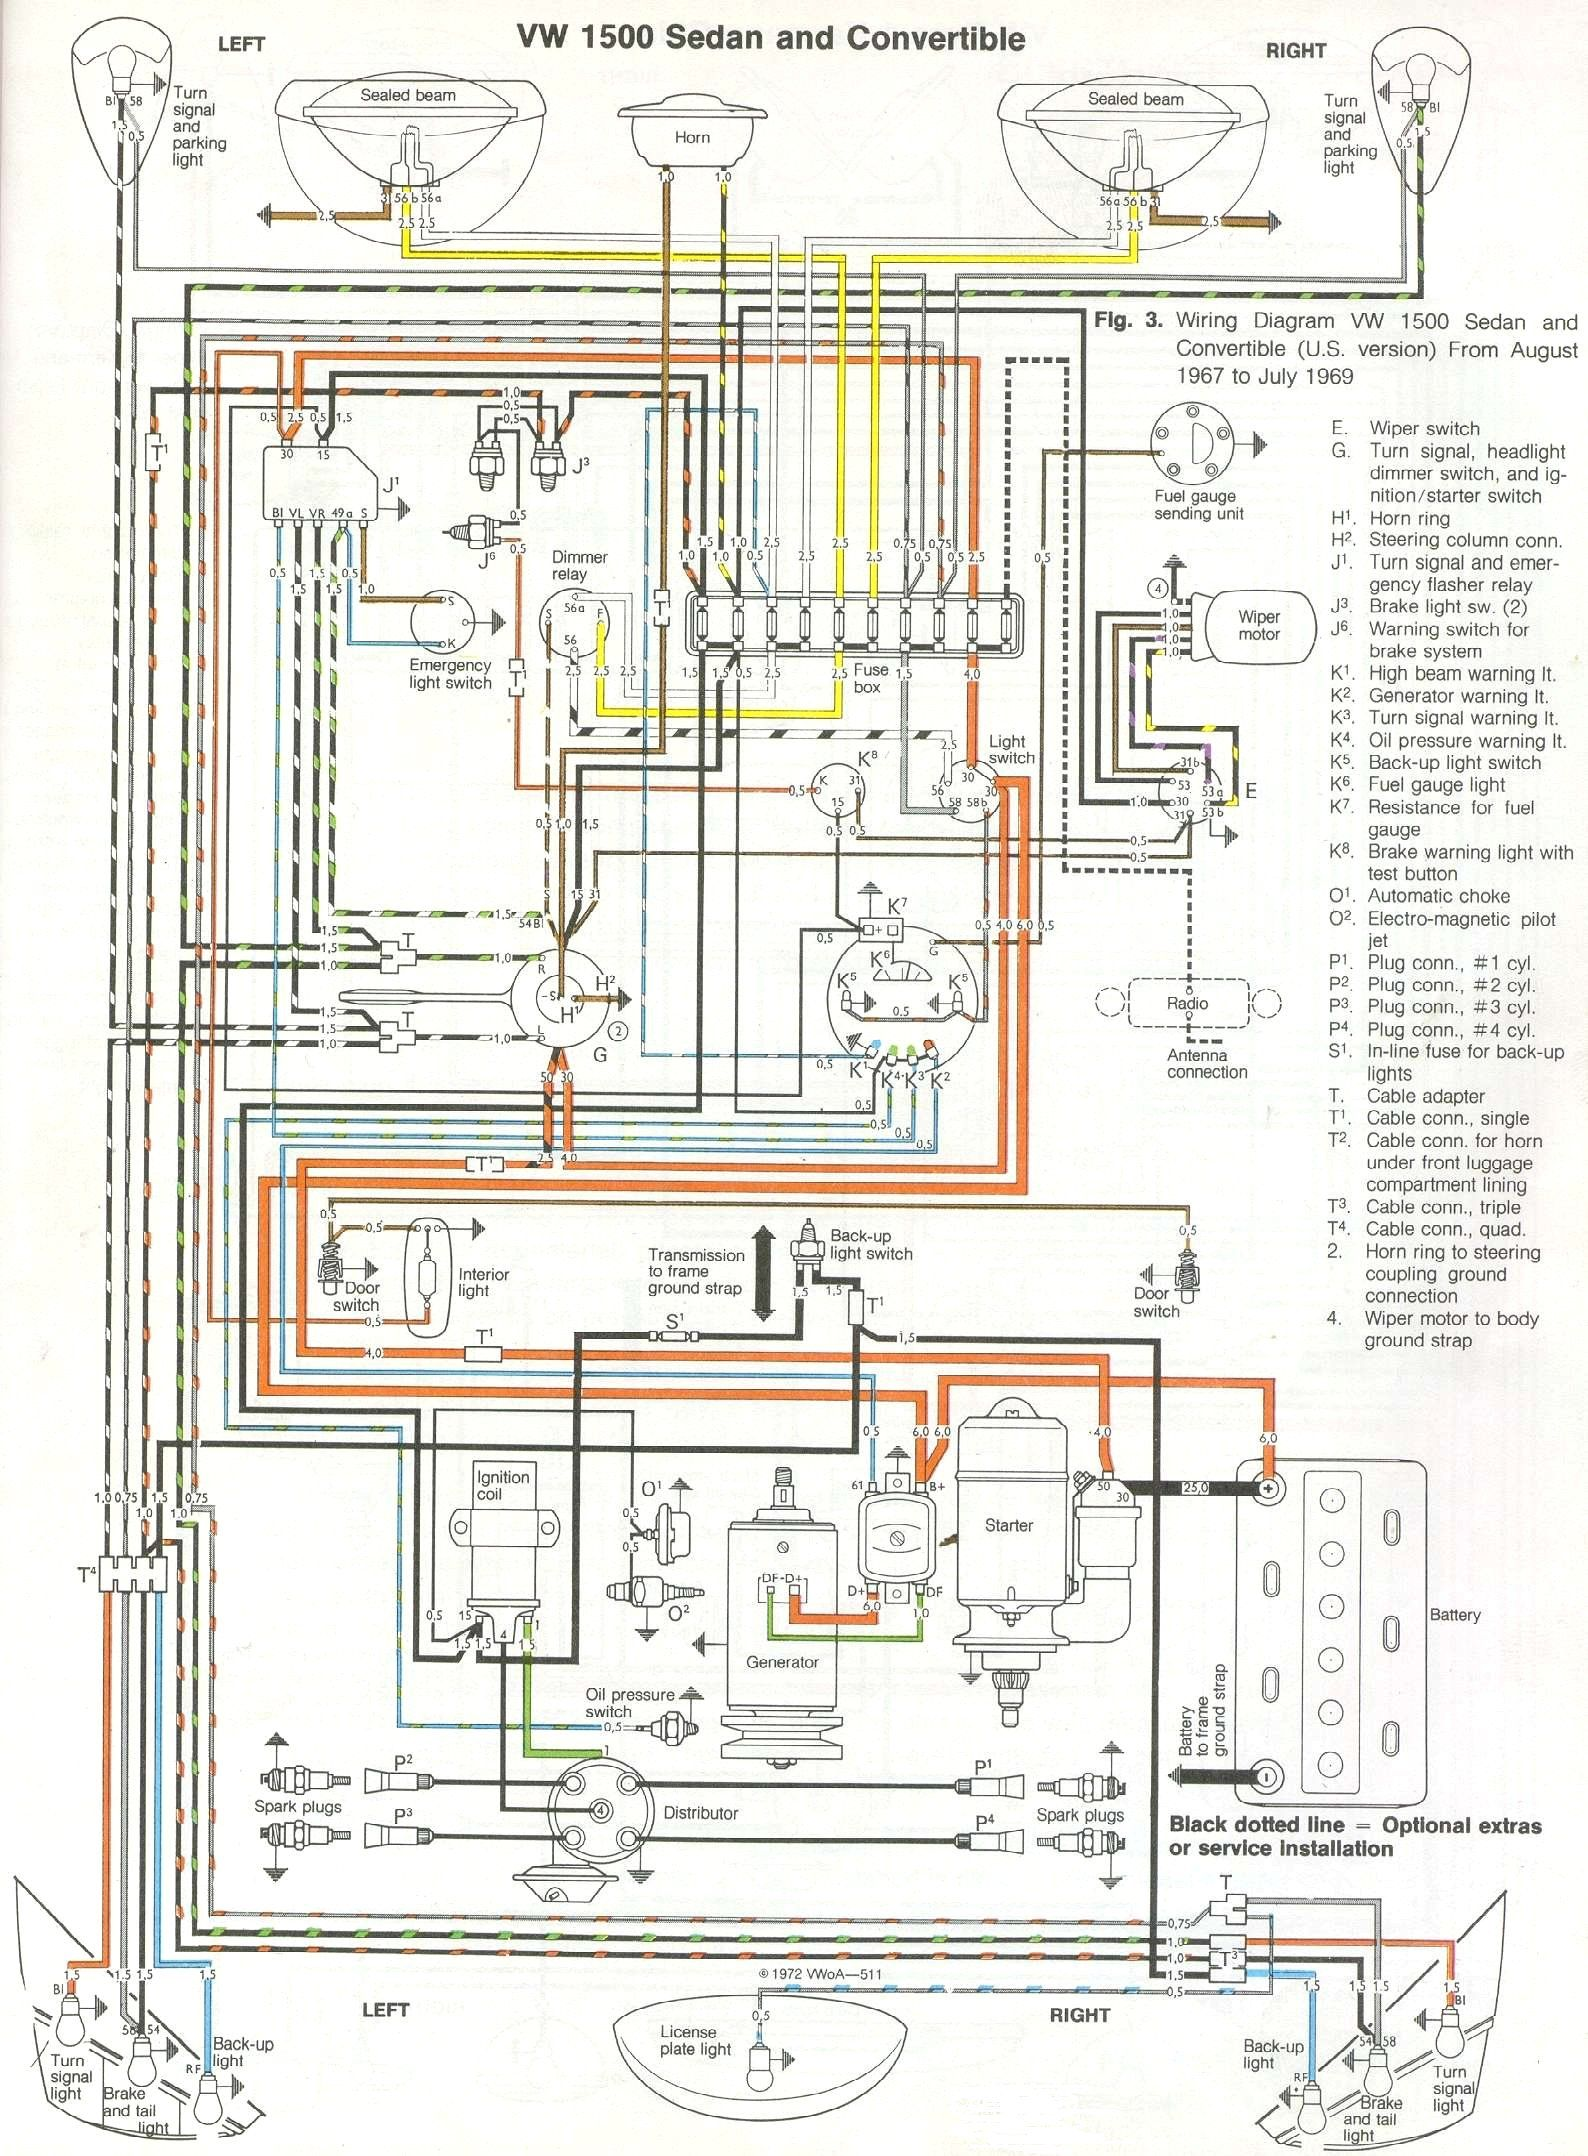 1973 vw wiring wiring diagram Series and Parallel Circuits Diagrams 1973 vw thing wiring diagram 3 hyn capecoral bootsvermietung de \\u2022